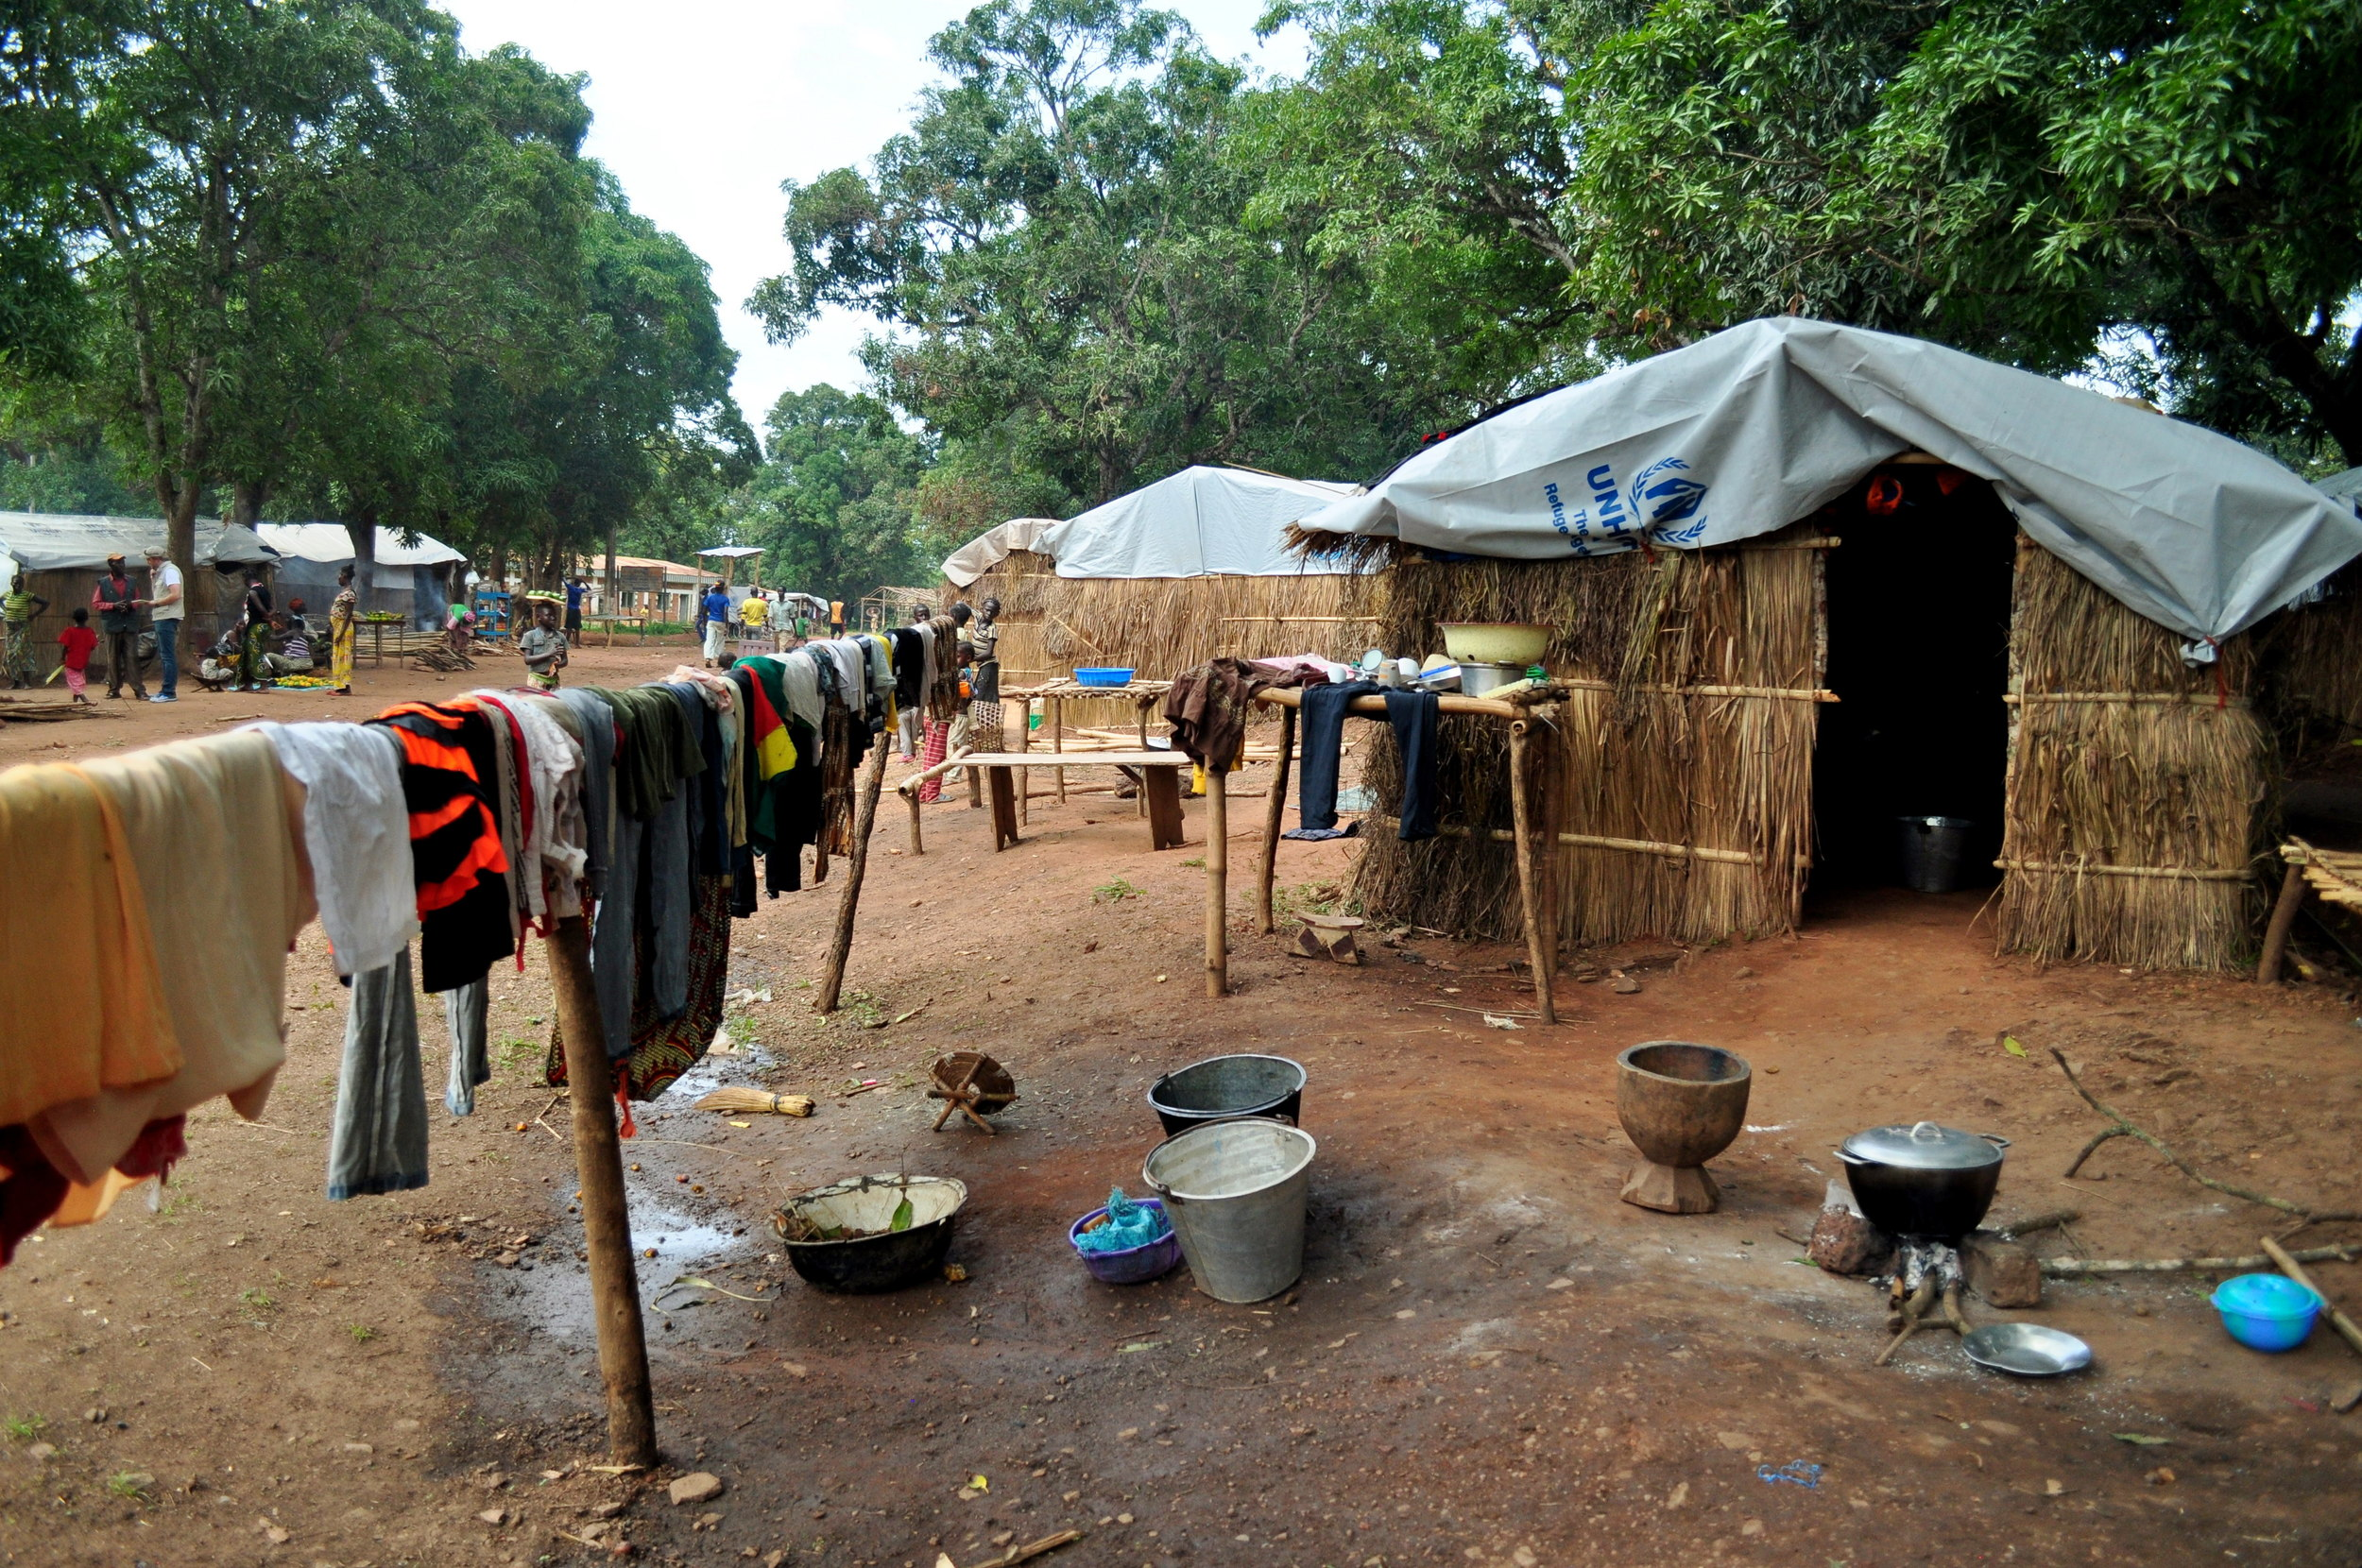 There are more than 30,000 internally displaced people in Bambari right now. Many live in informal camps, like this one, while others live with host families.